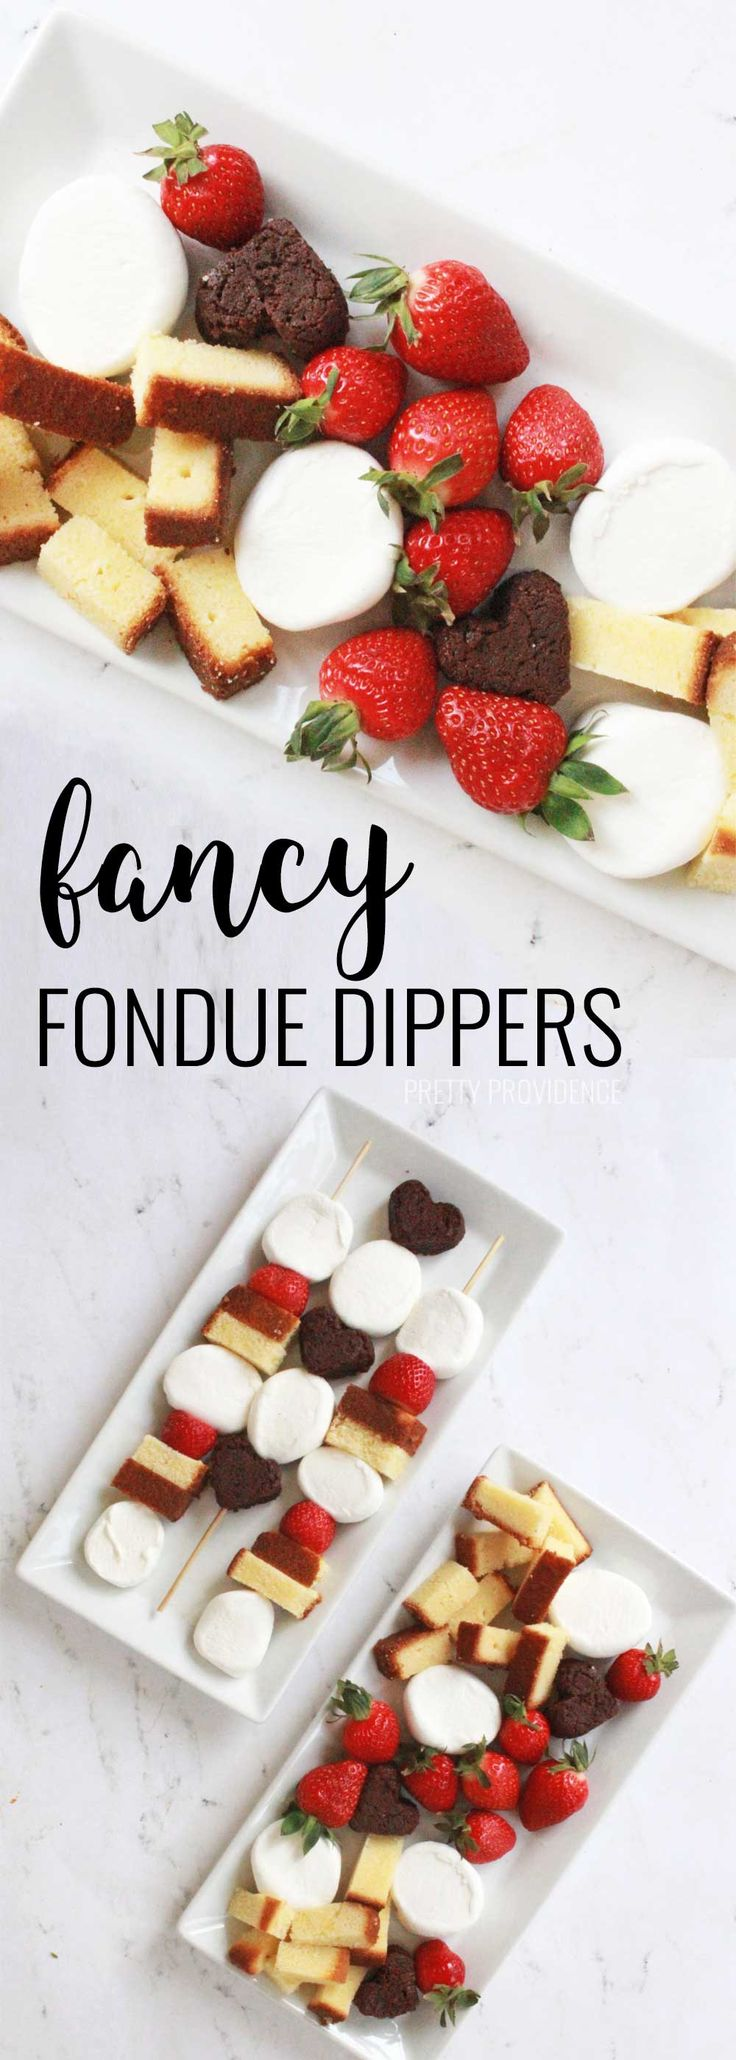 Fancy fondue dippers for Valentine's Day or anniversary desserts! Heart shaped brownies, marshmallows and strawberries are perfect for chocolate fondue!